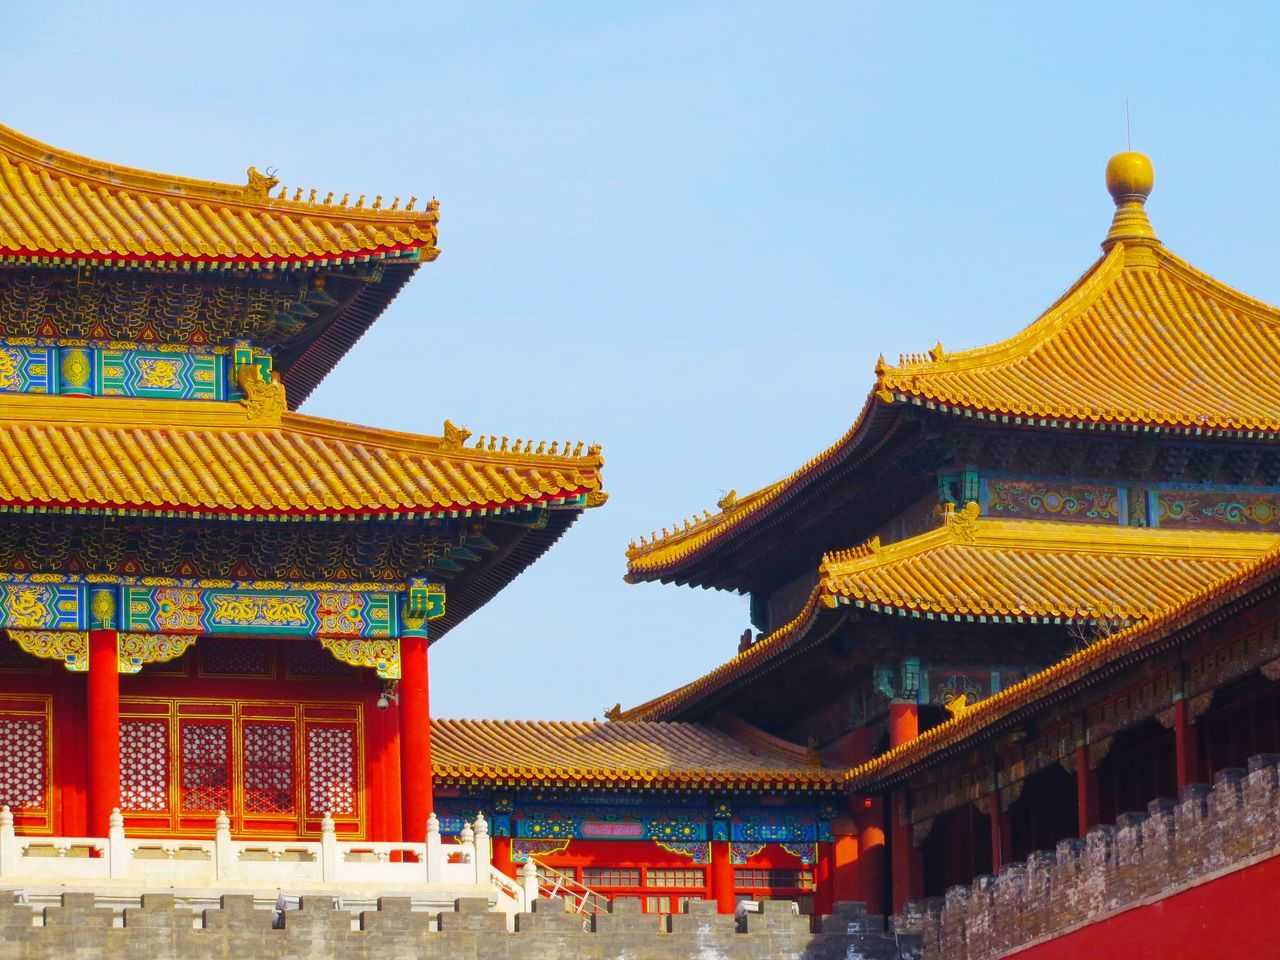 architecture, building exterior, built structure, religion, roof, place of worship, eaves, traditional building, travel destinations, gold colored, cultures, day, no people, spirituality, low angle view, outdoors, sky, clear sky